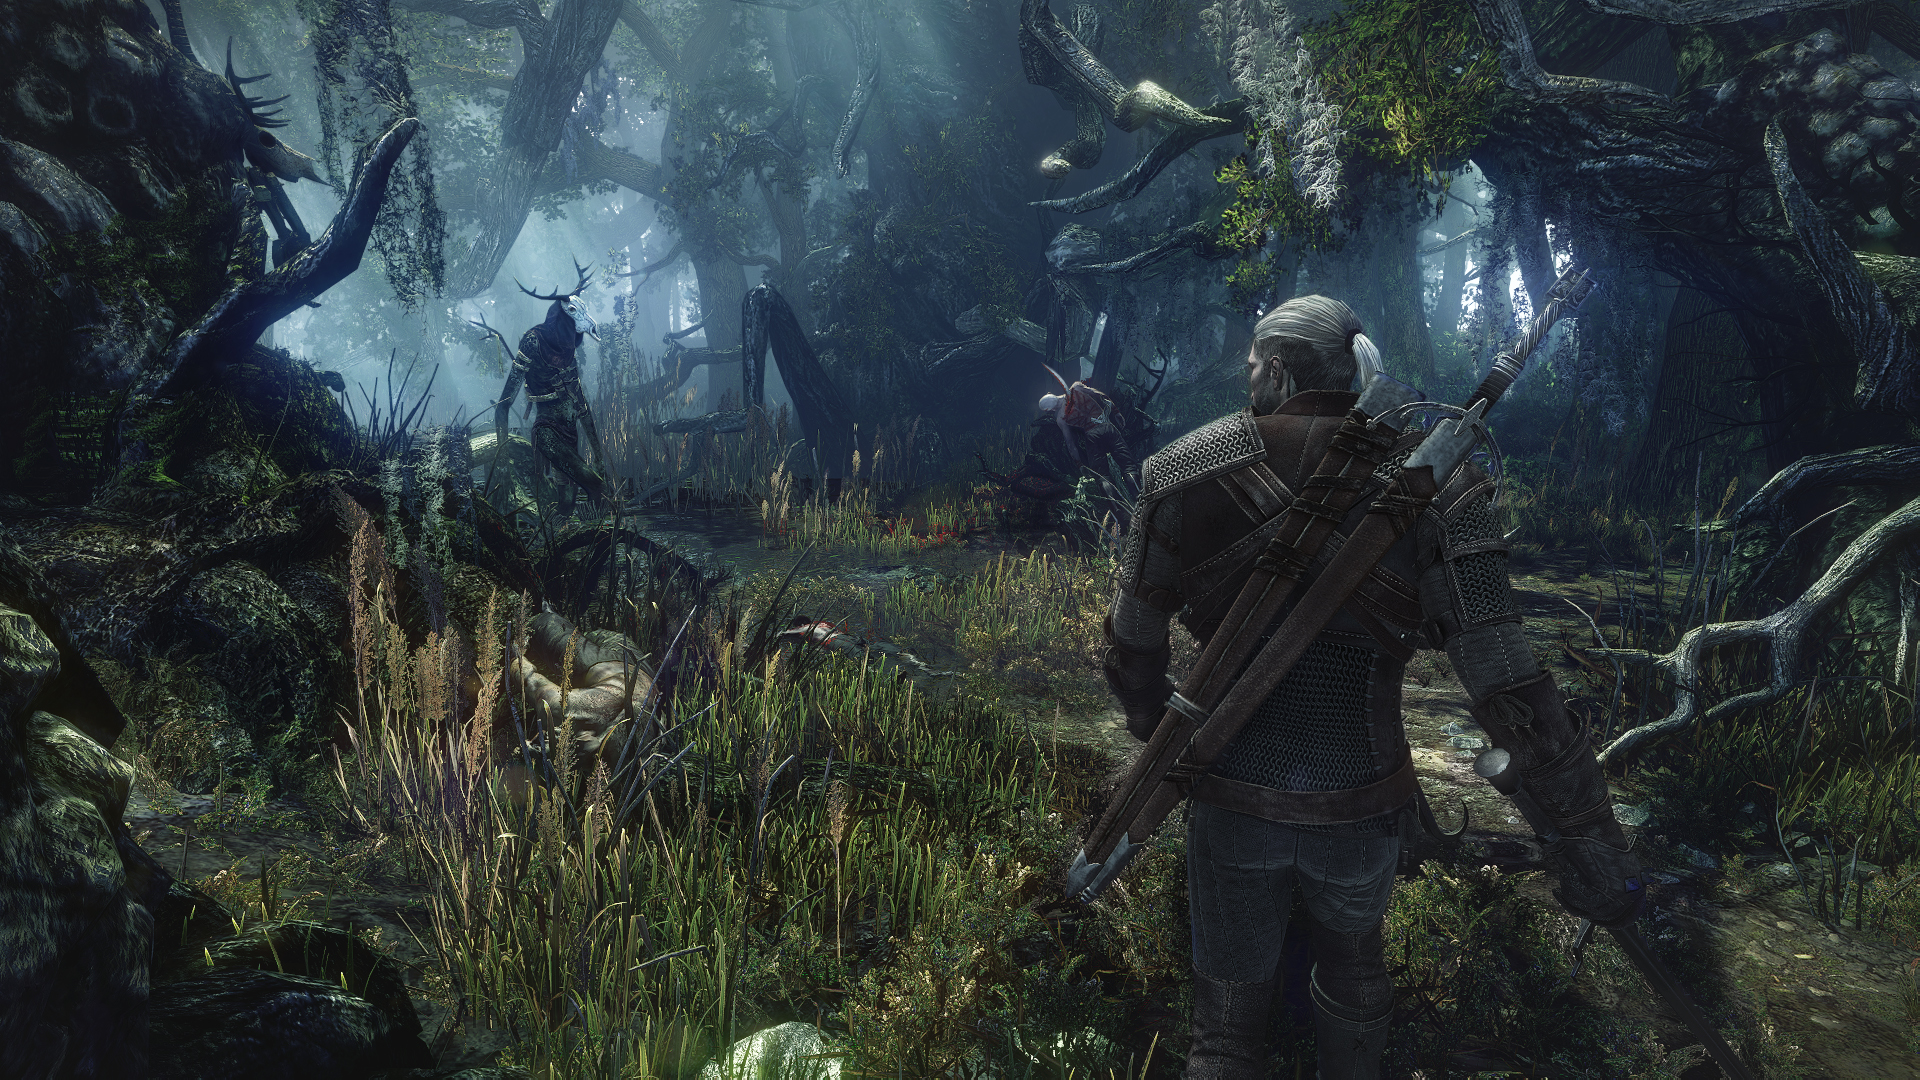 TheWitcher3 featured